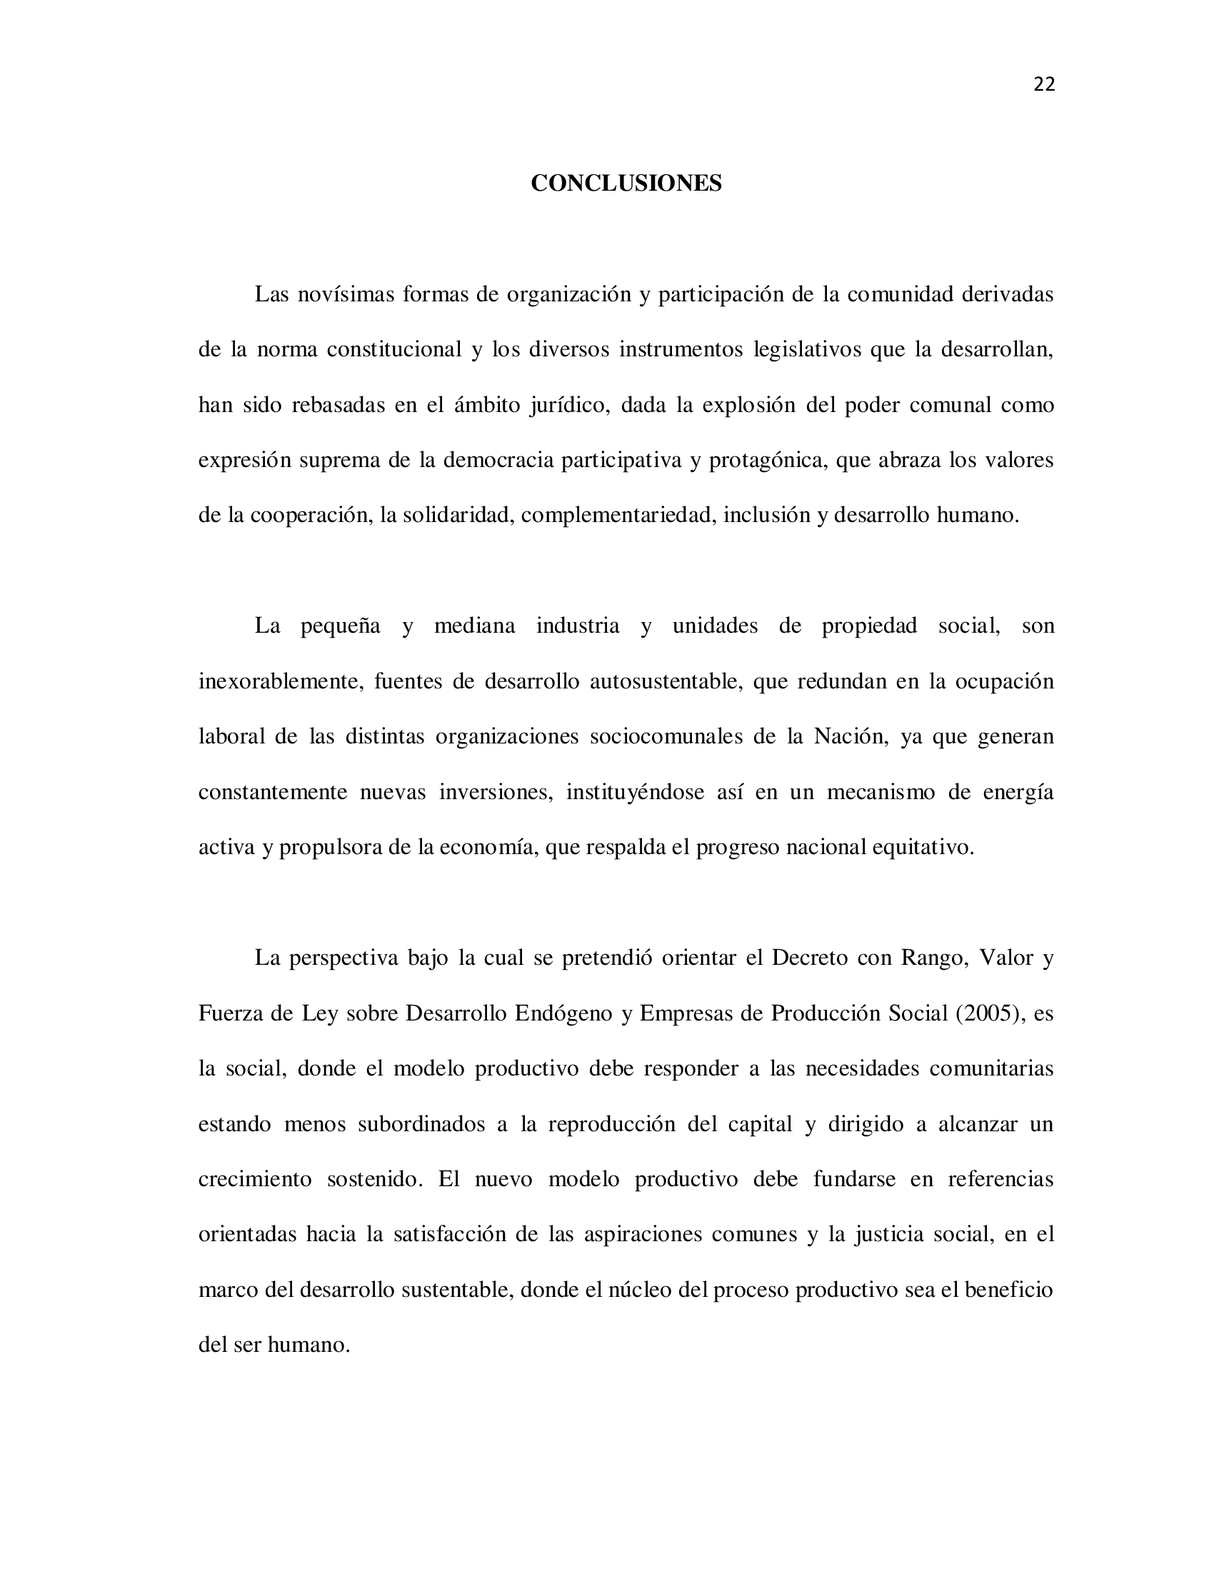 Page 22